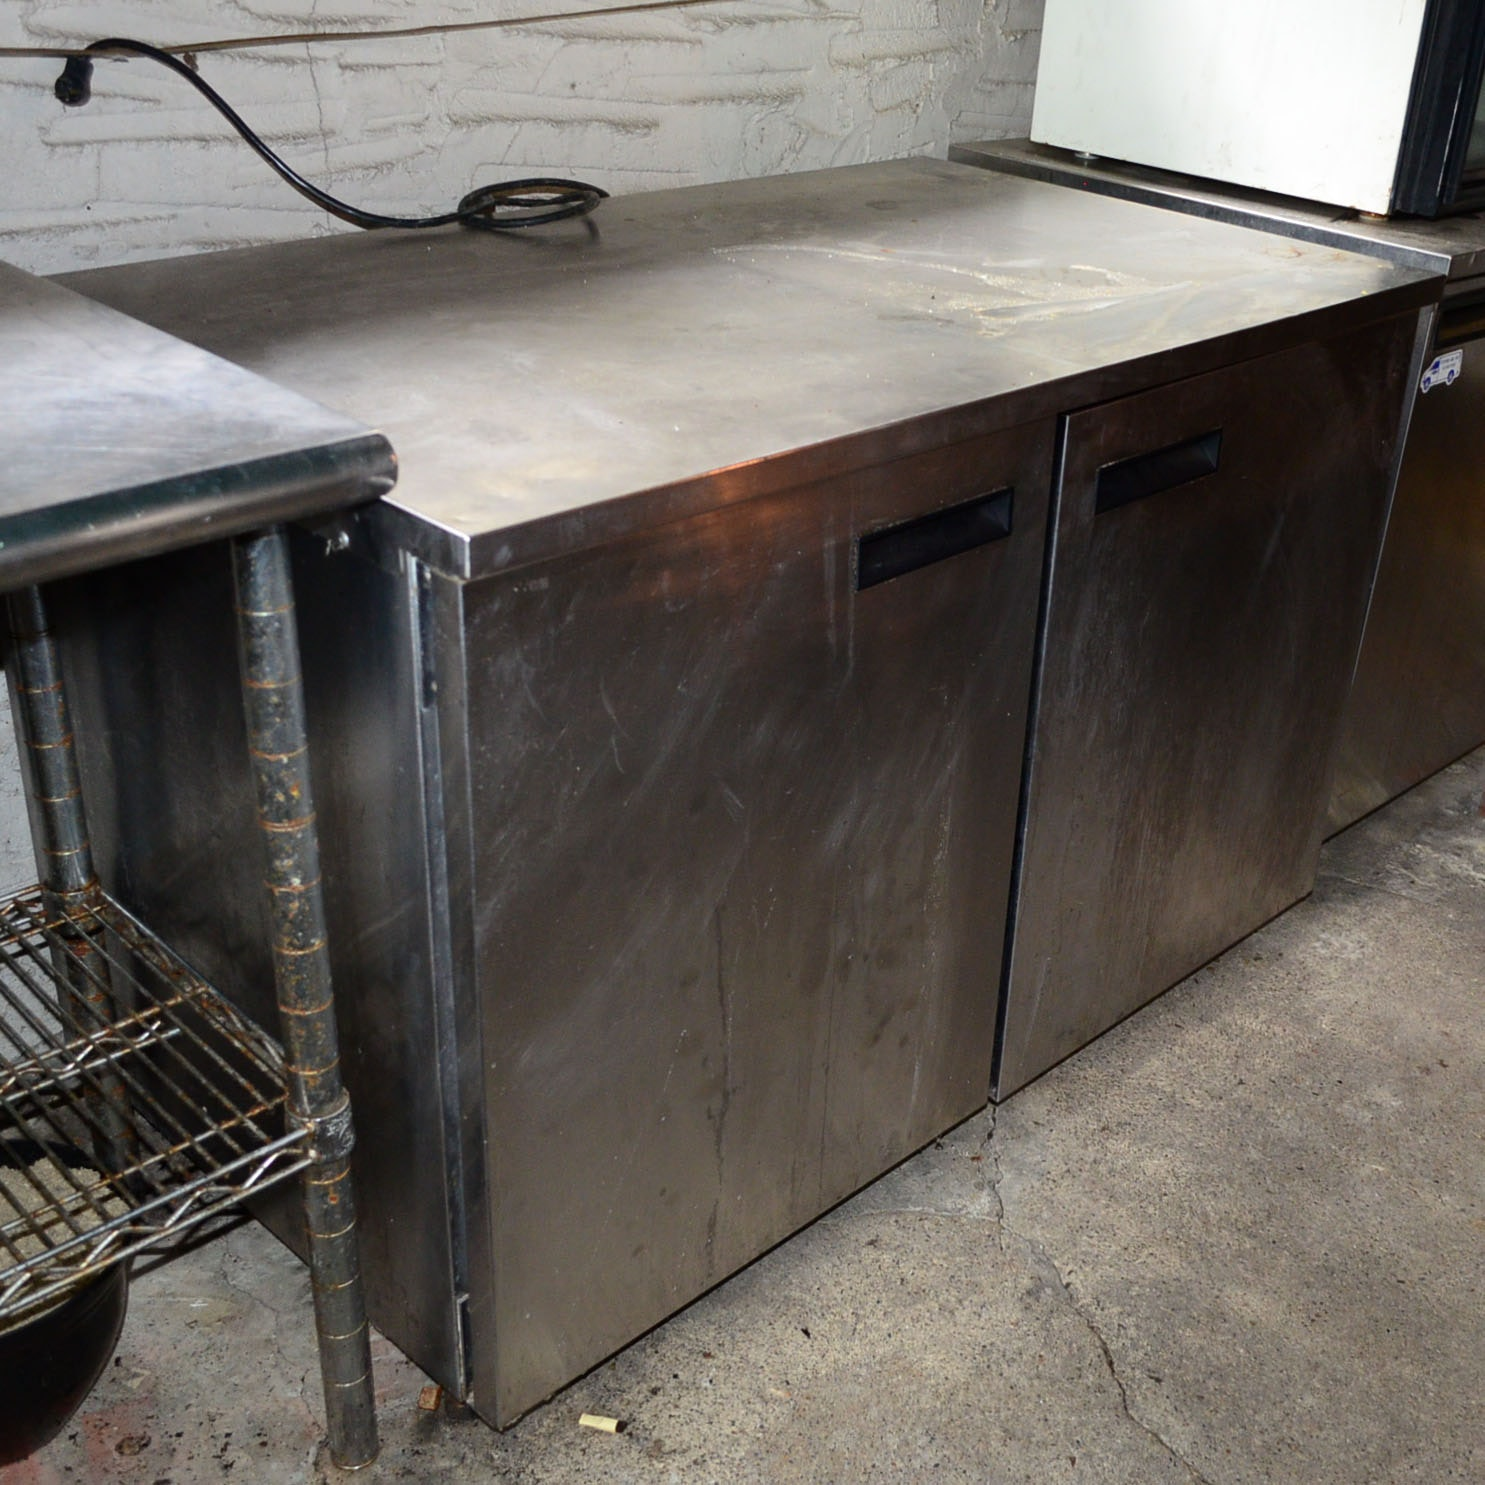 Appliances Auction Used Appliances For Sale In